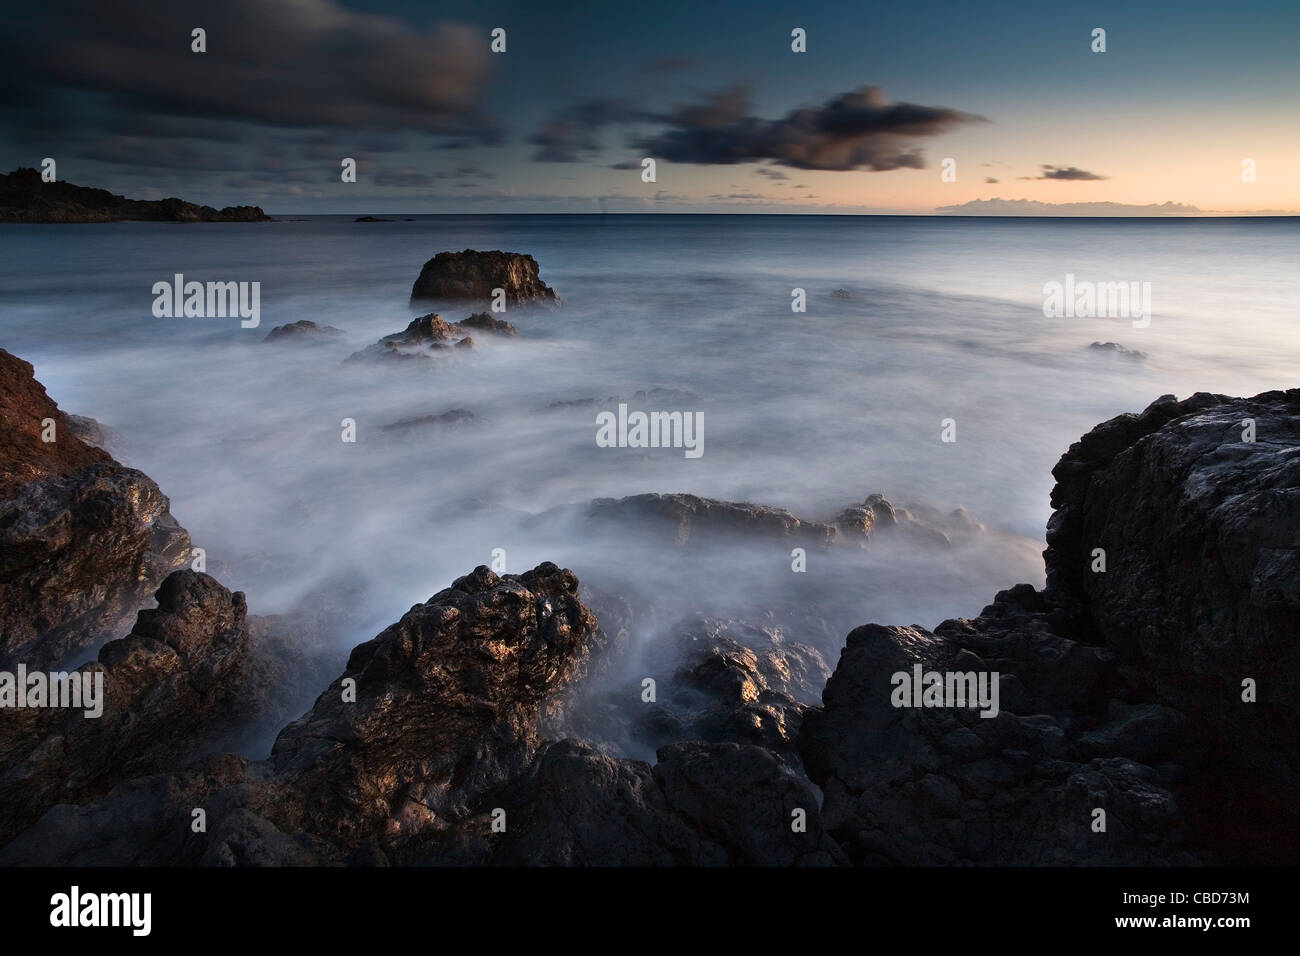 Time lapse view of waves on rocky beach - Stock Image